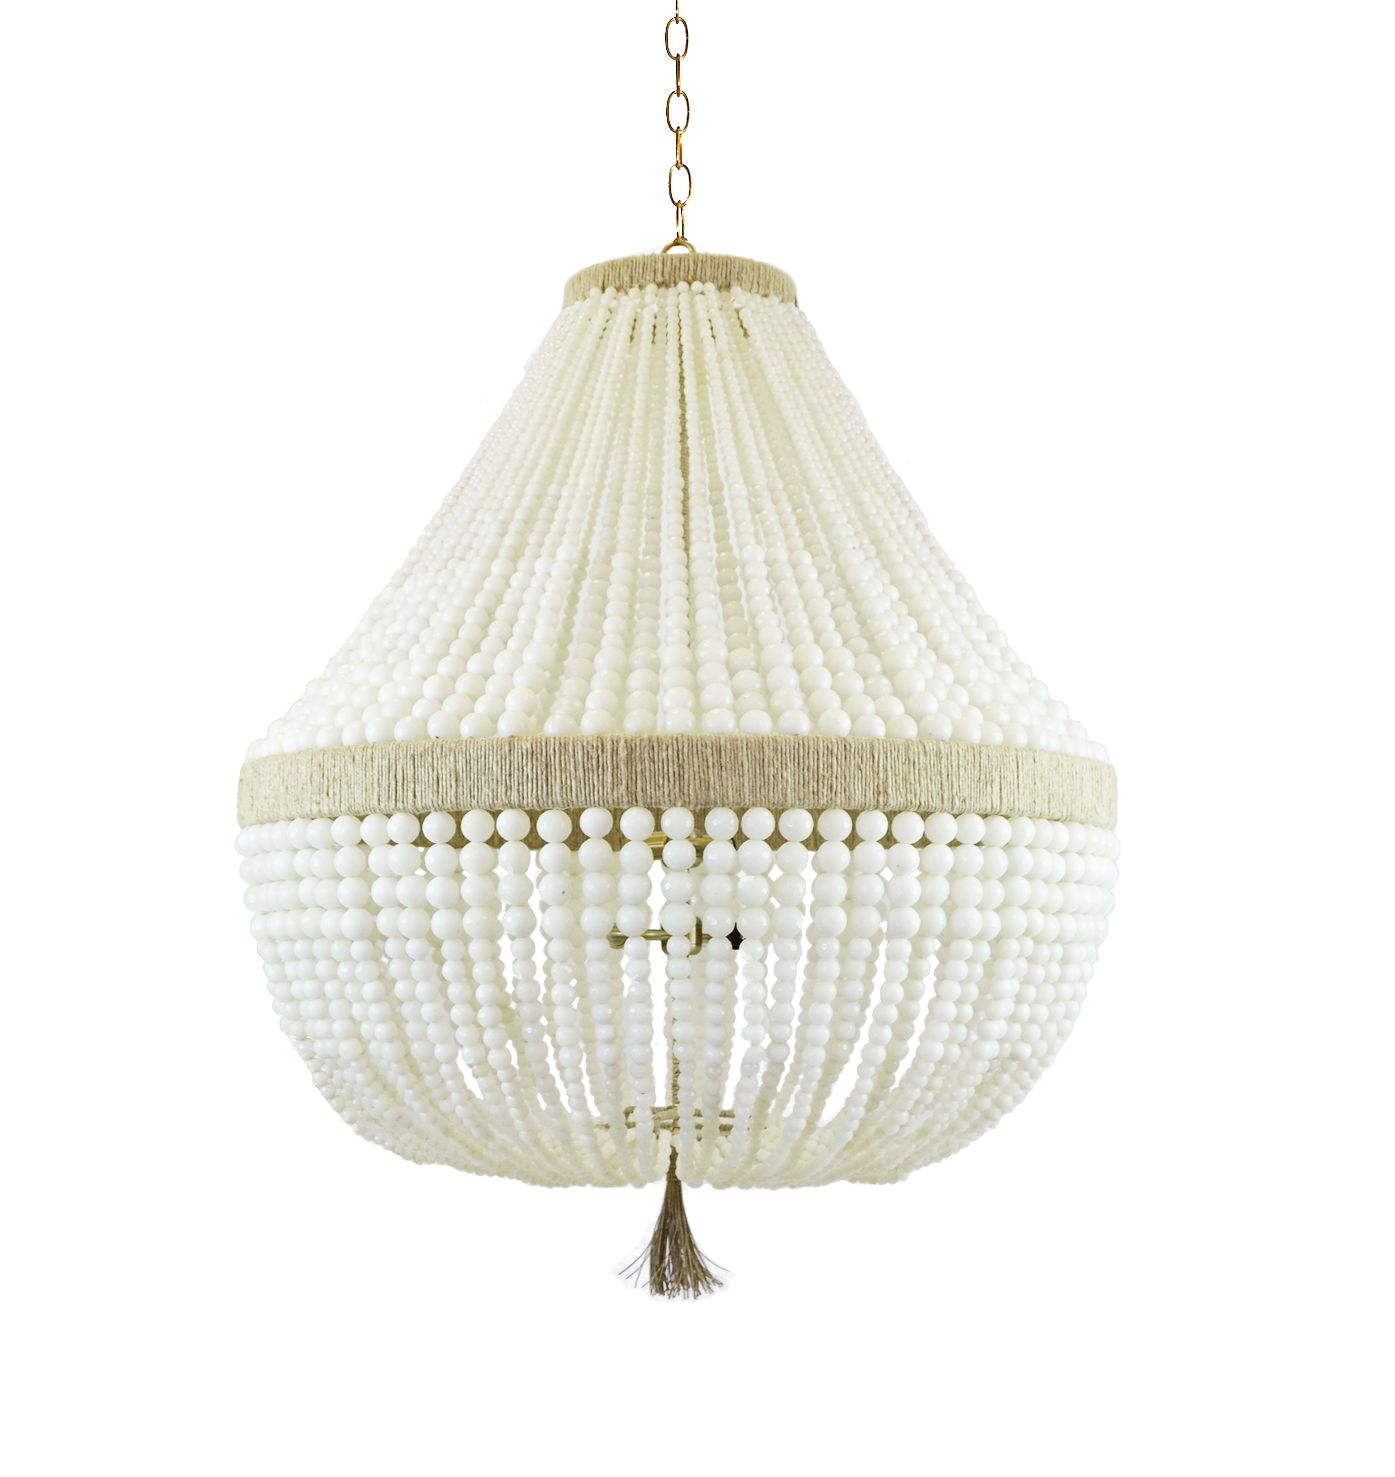 Beaded chandeliers invaluable lighting lessons chandeliers gorgeous chandelier but too pricey arubaitofo Image collections